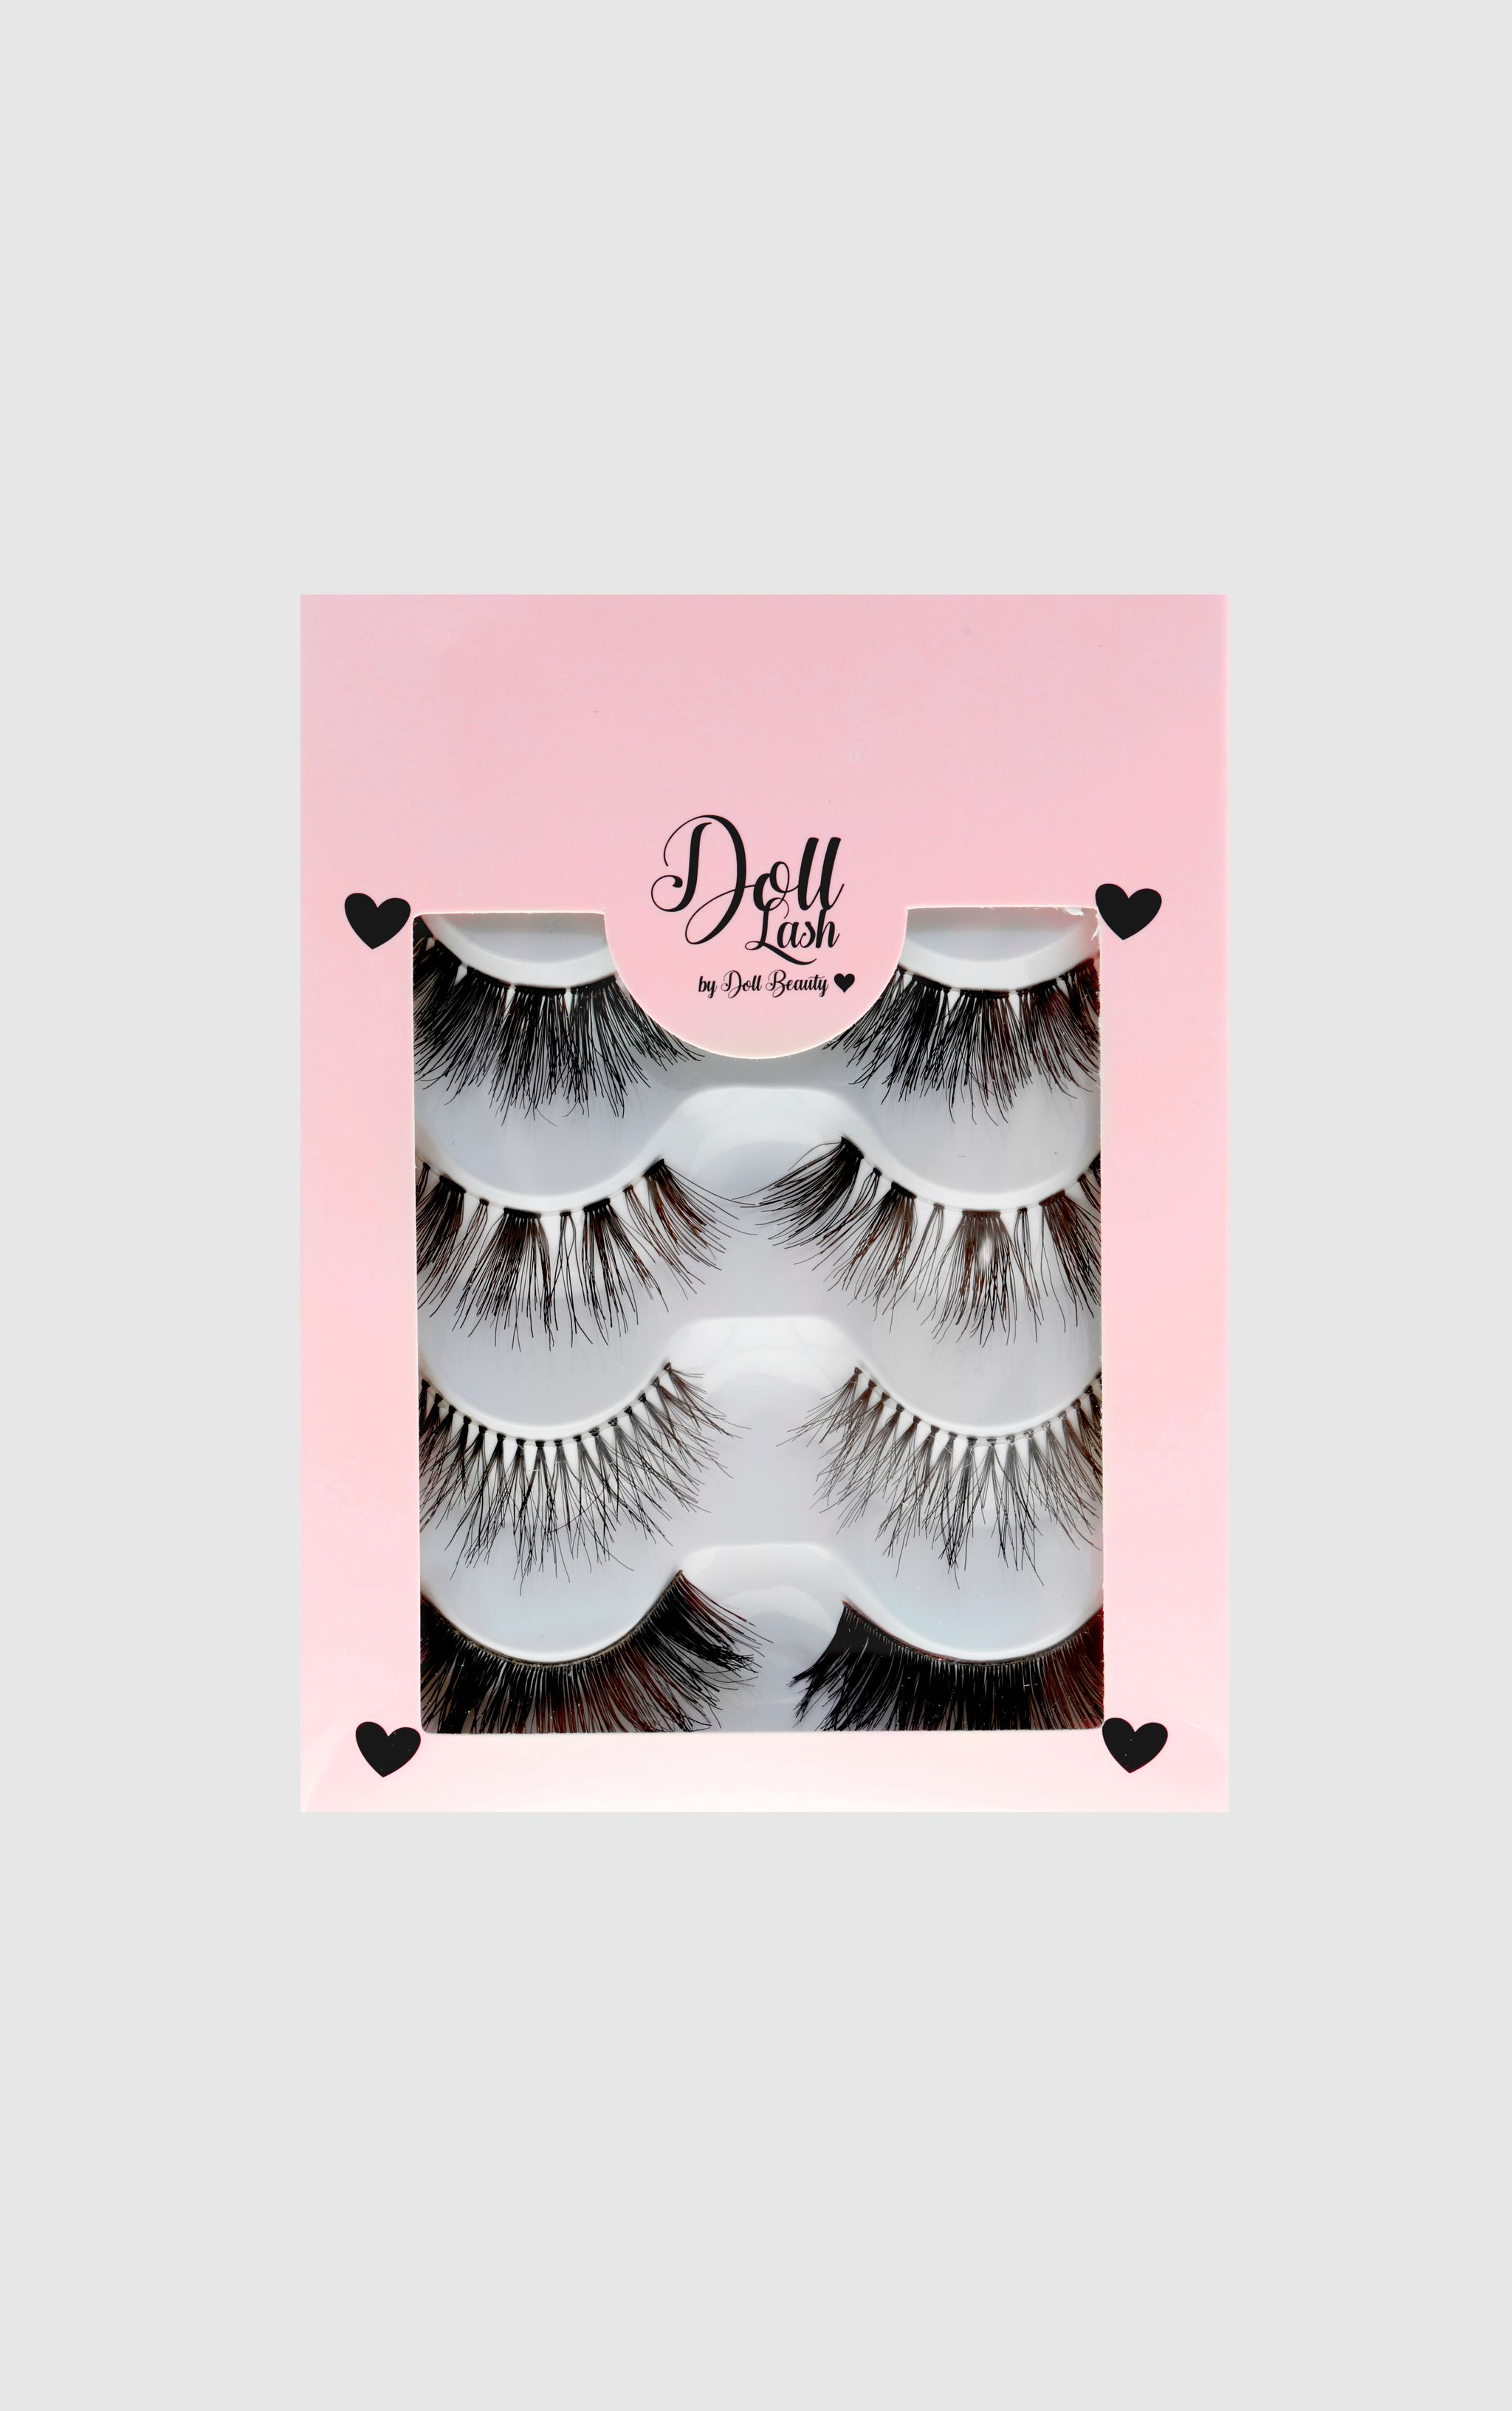 Doll Lash Multipack Of 4 False Eyelashes